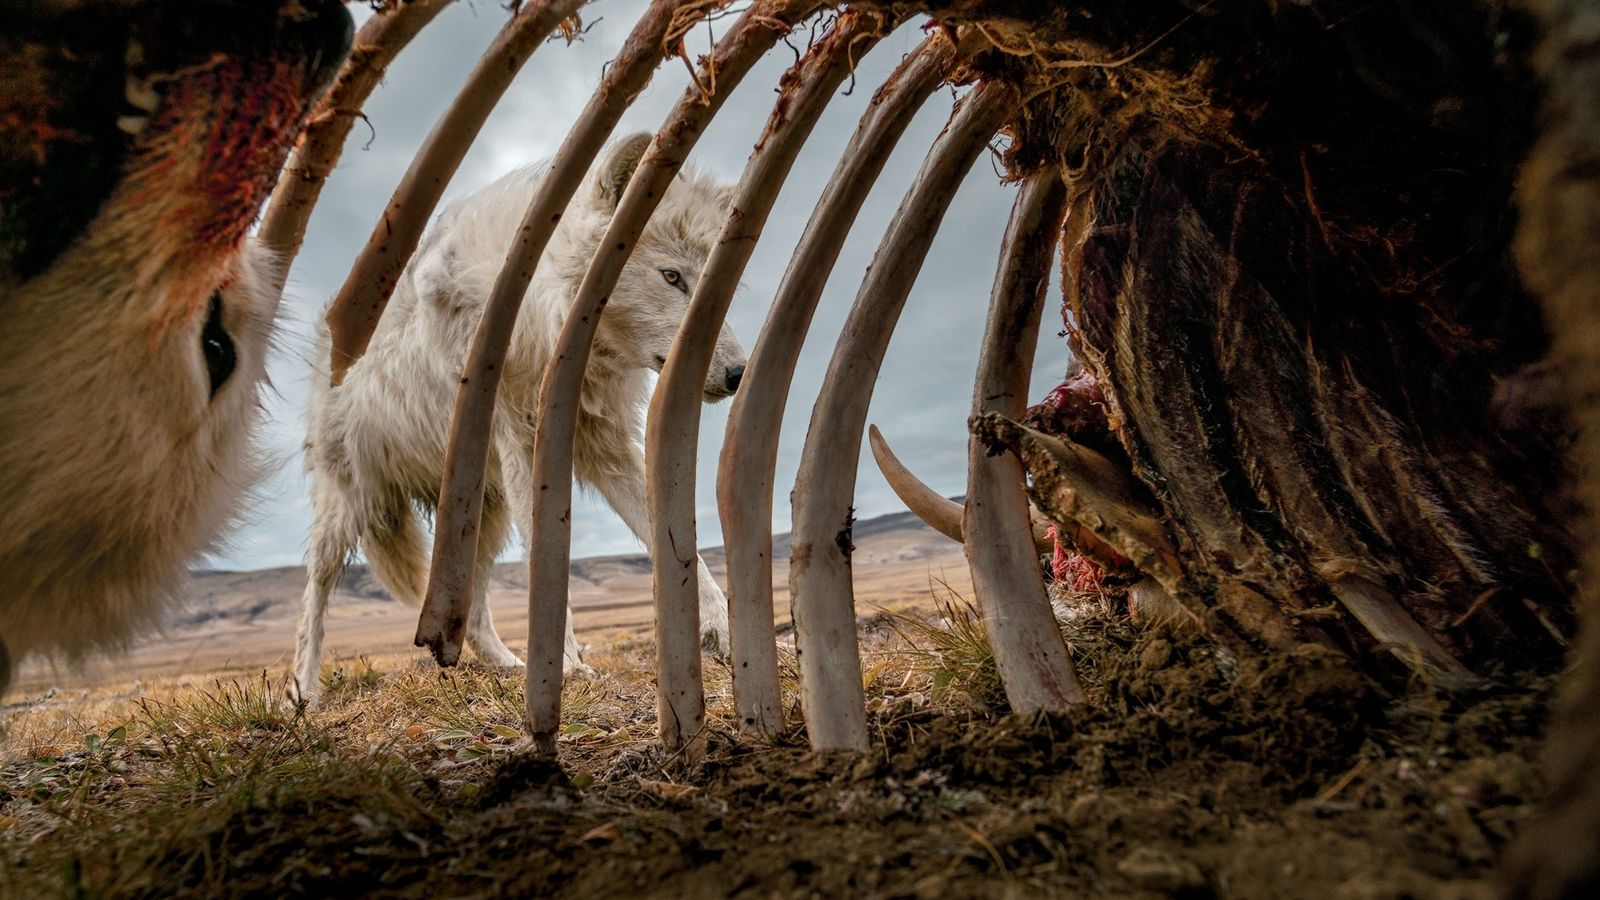 Wolves pick at the remains of a muskox. To get this image, photographer Ronan Donovan placed ...